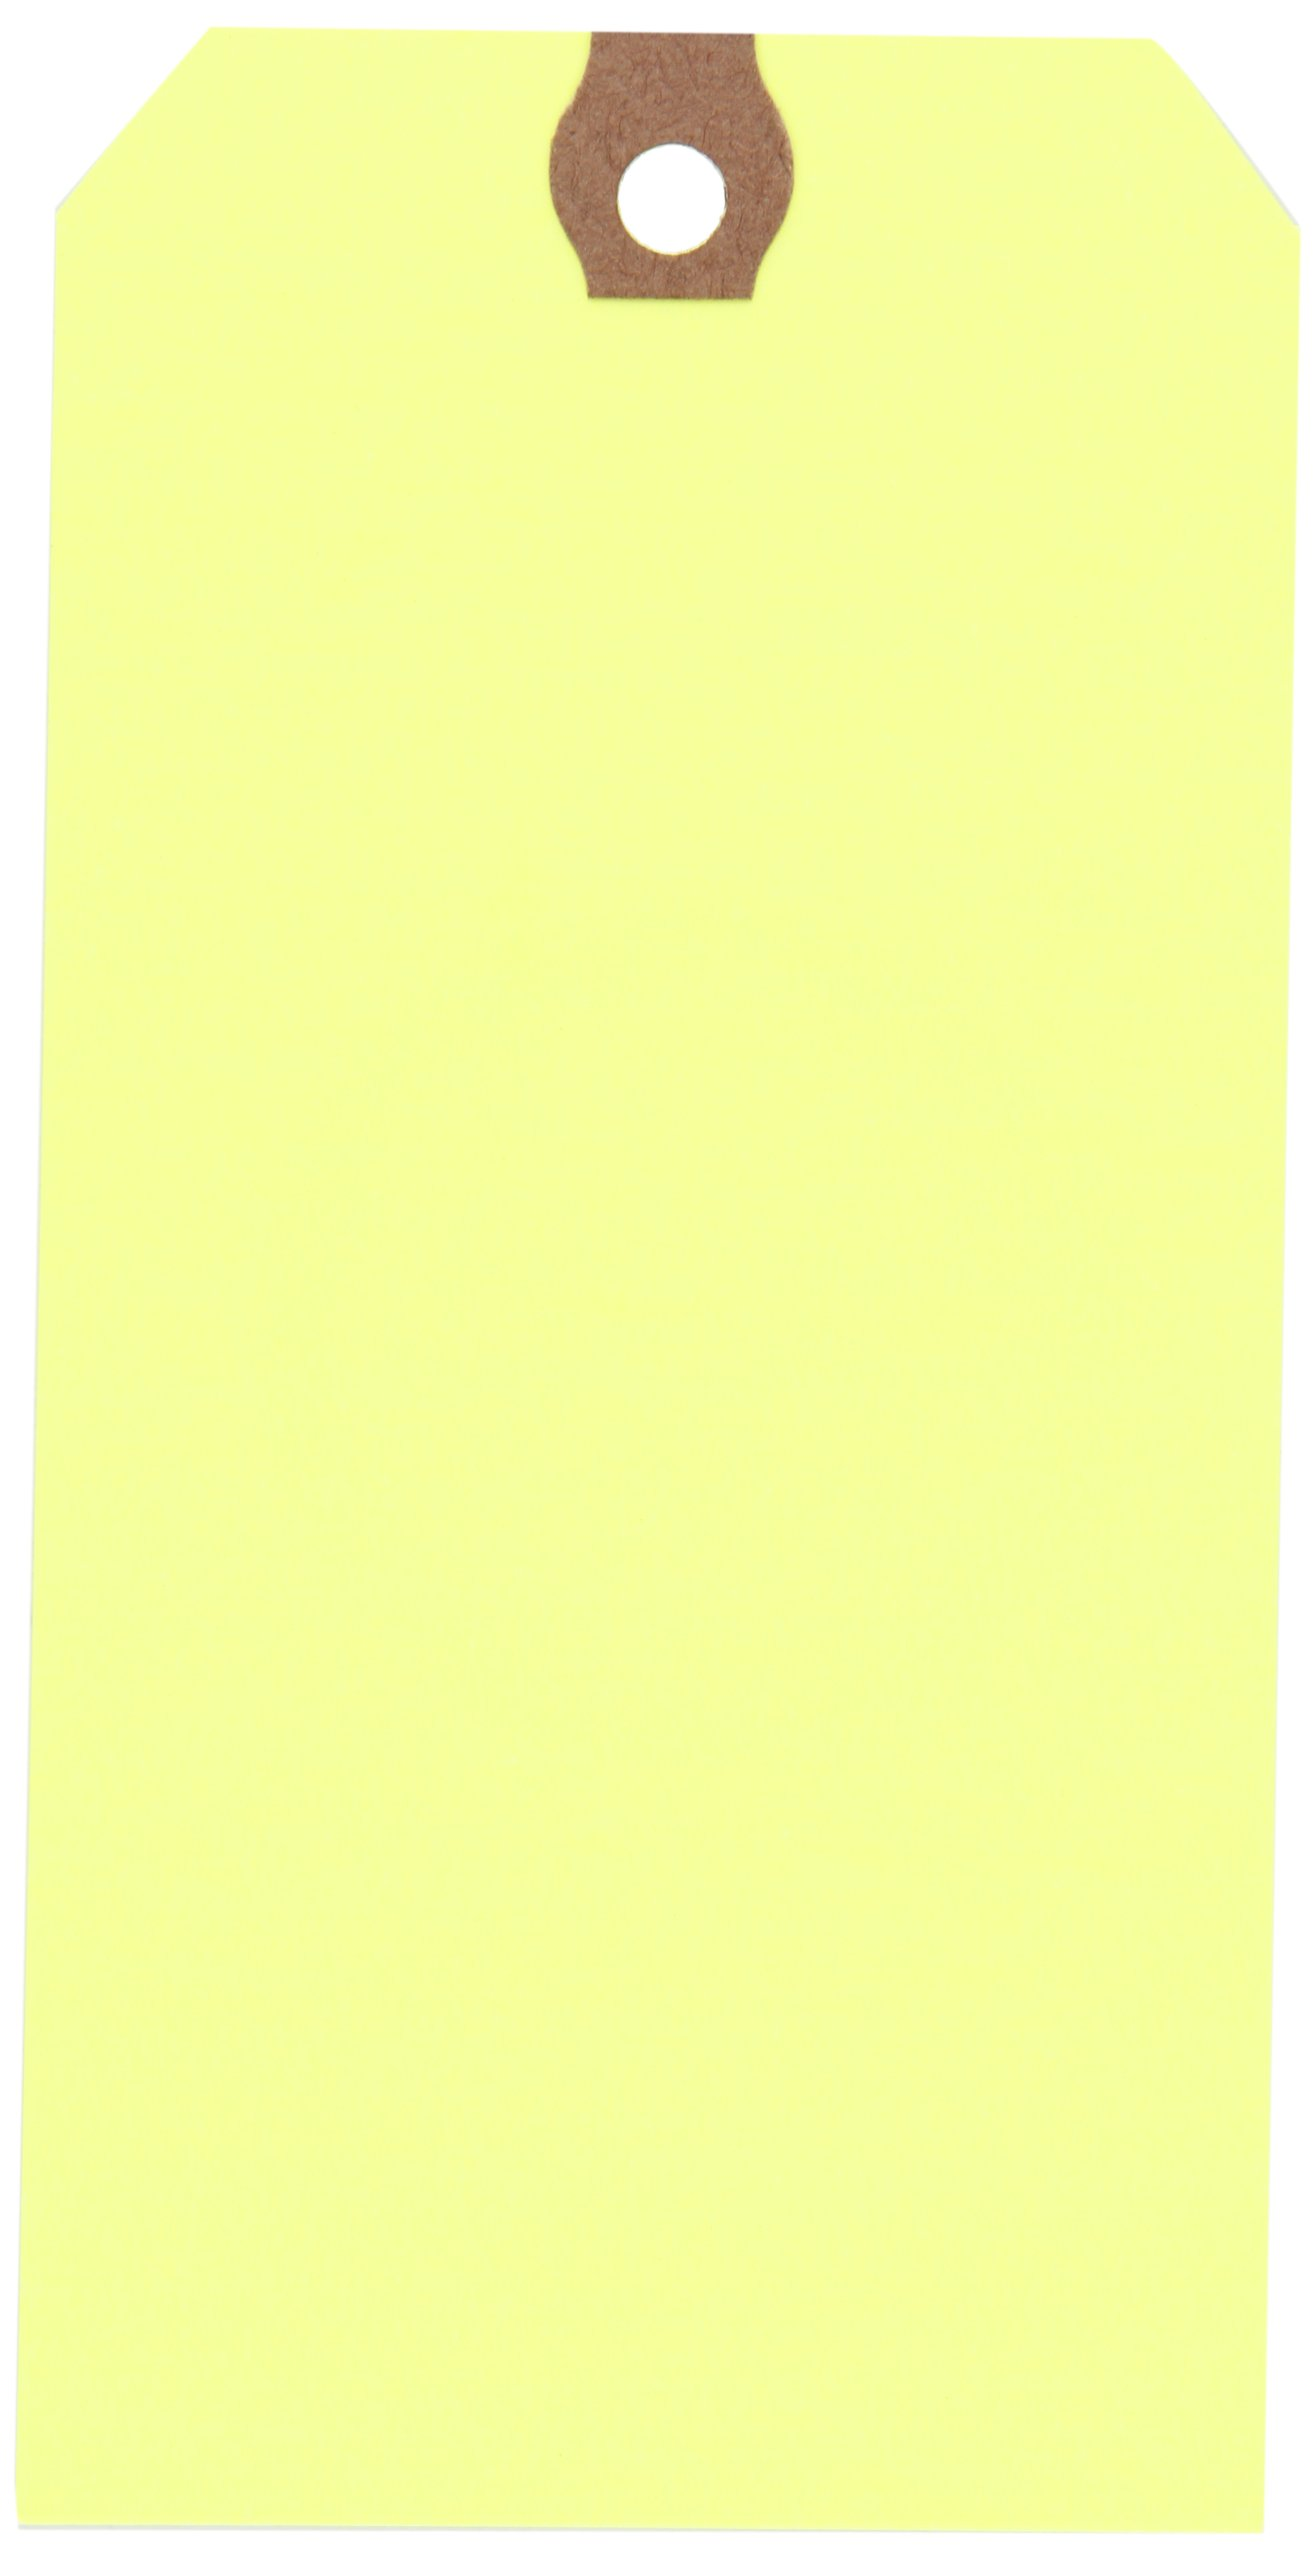 Aviditi 13 Point Cardstock Shipping Tag, 5-3/4'' L x 2-7/8'' W, Fluorescent Yellow, Case of 1000 (G12071A) by Aviditi